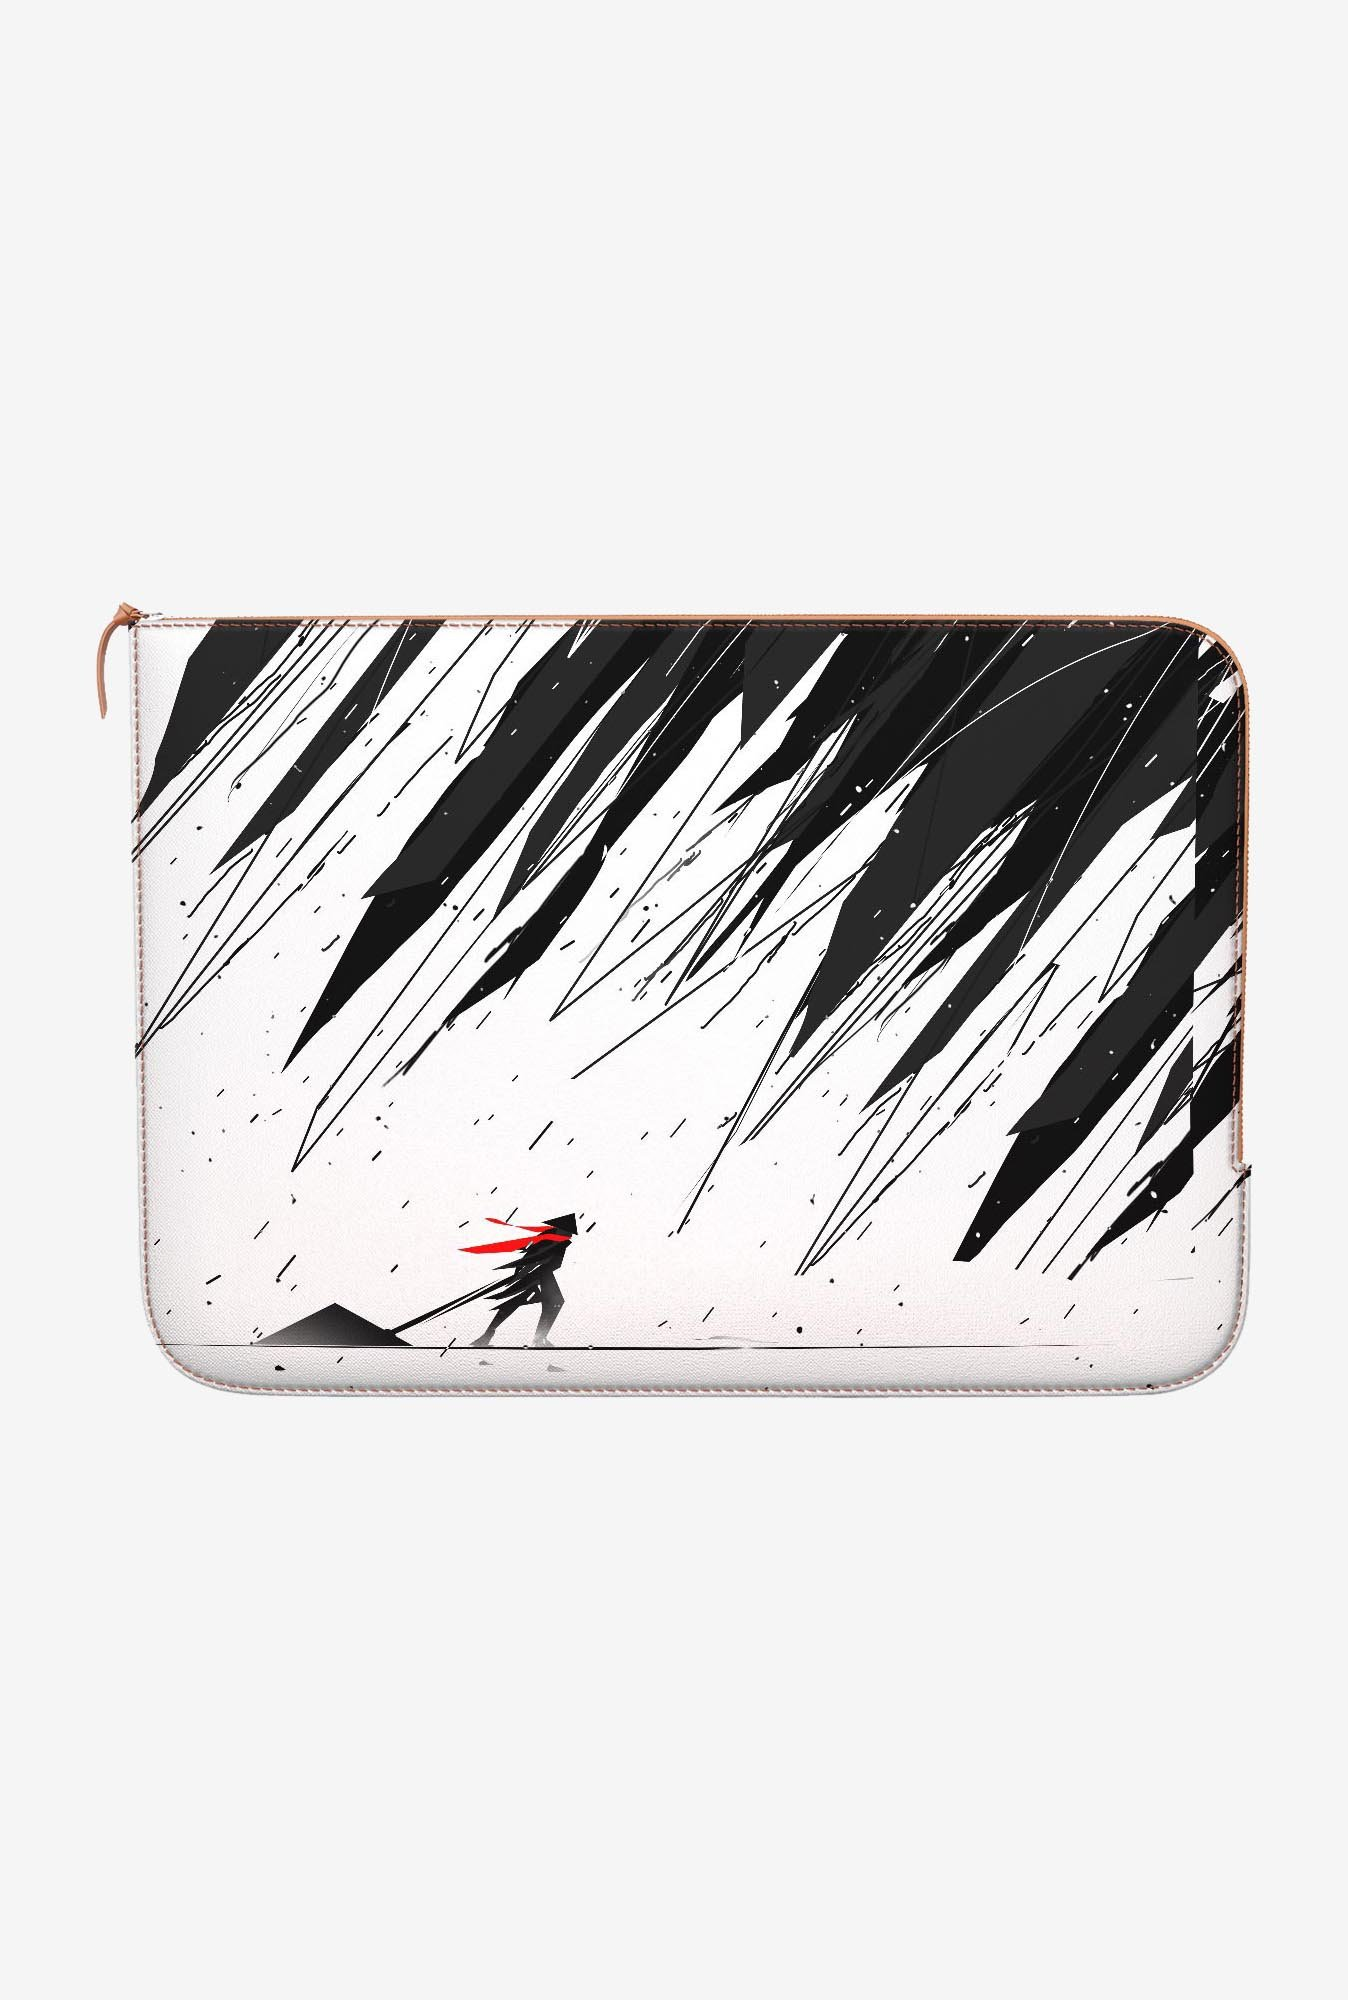 DailyObjects Geometric Storm MacBook Pro 15 Zippered Sleeve